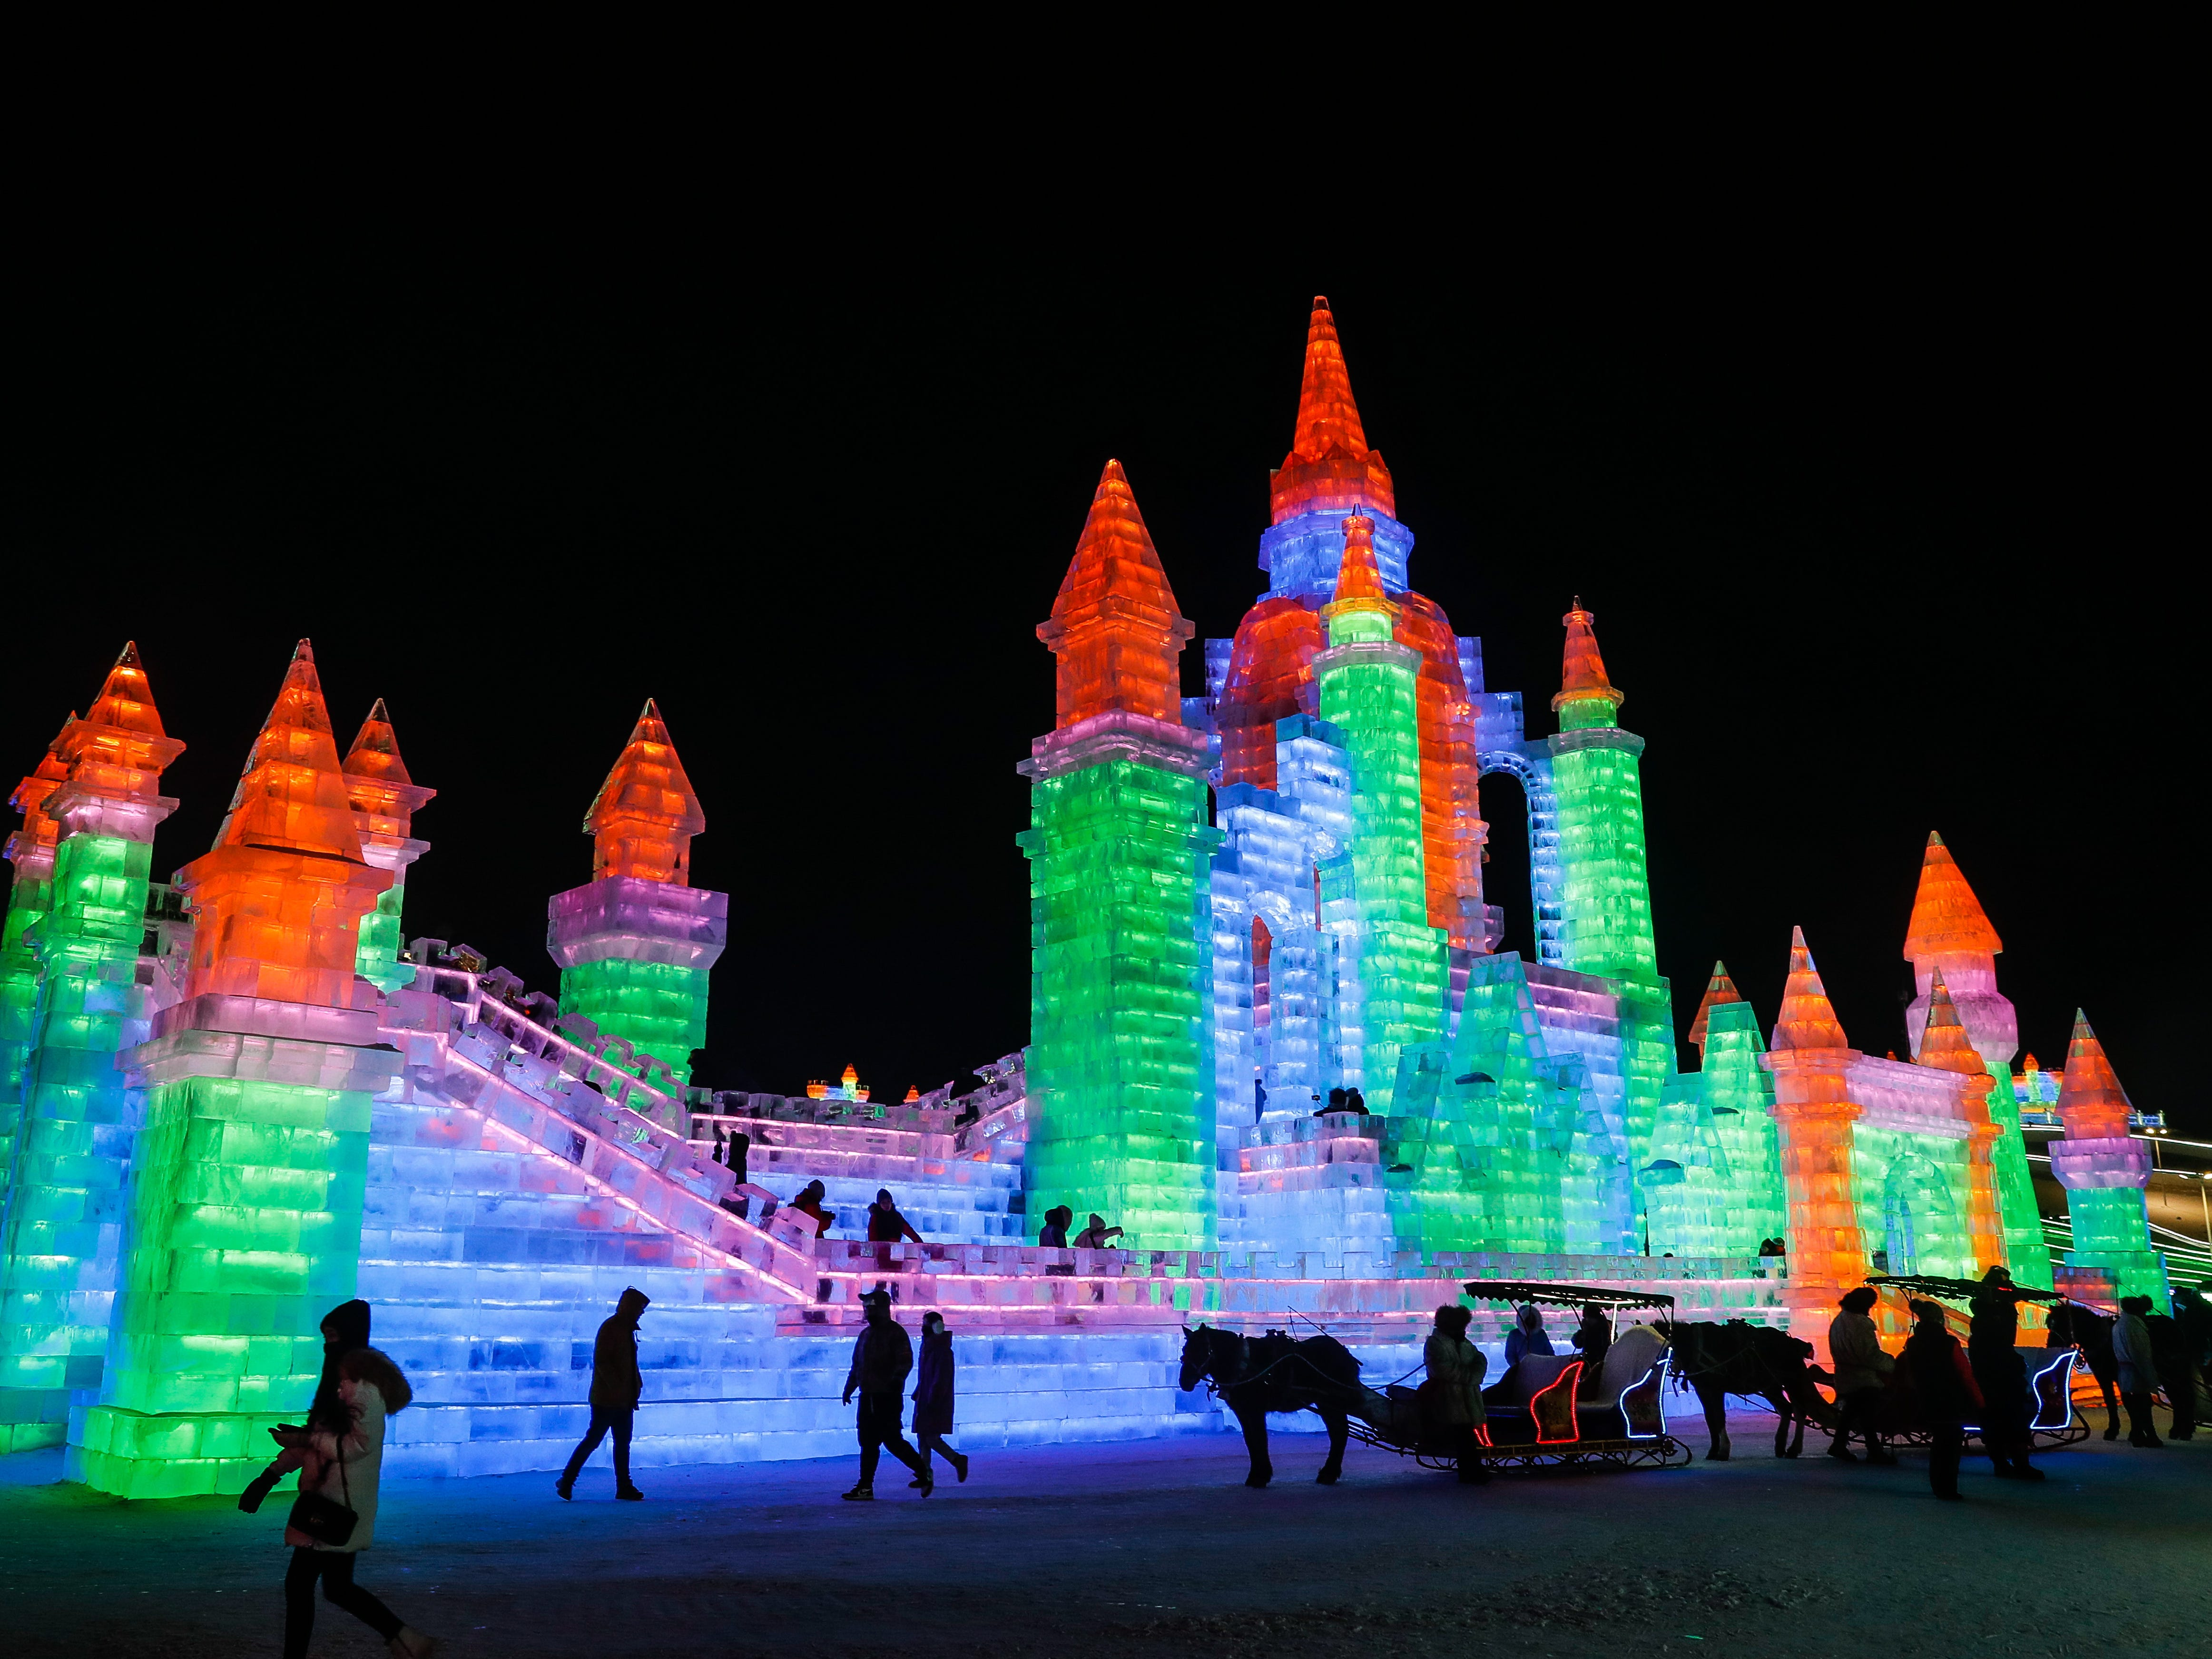 People visit the ice sculptures illuminated by colored lights.